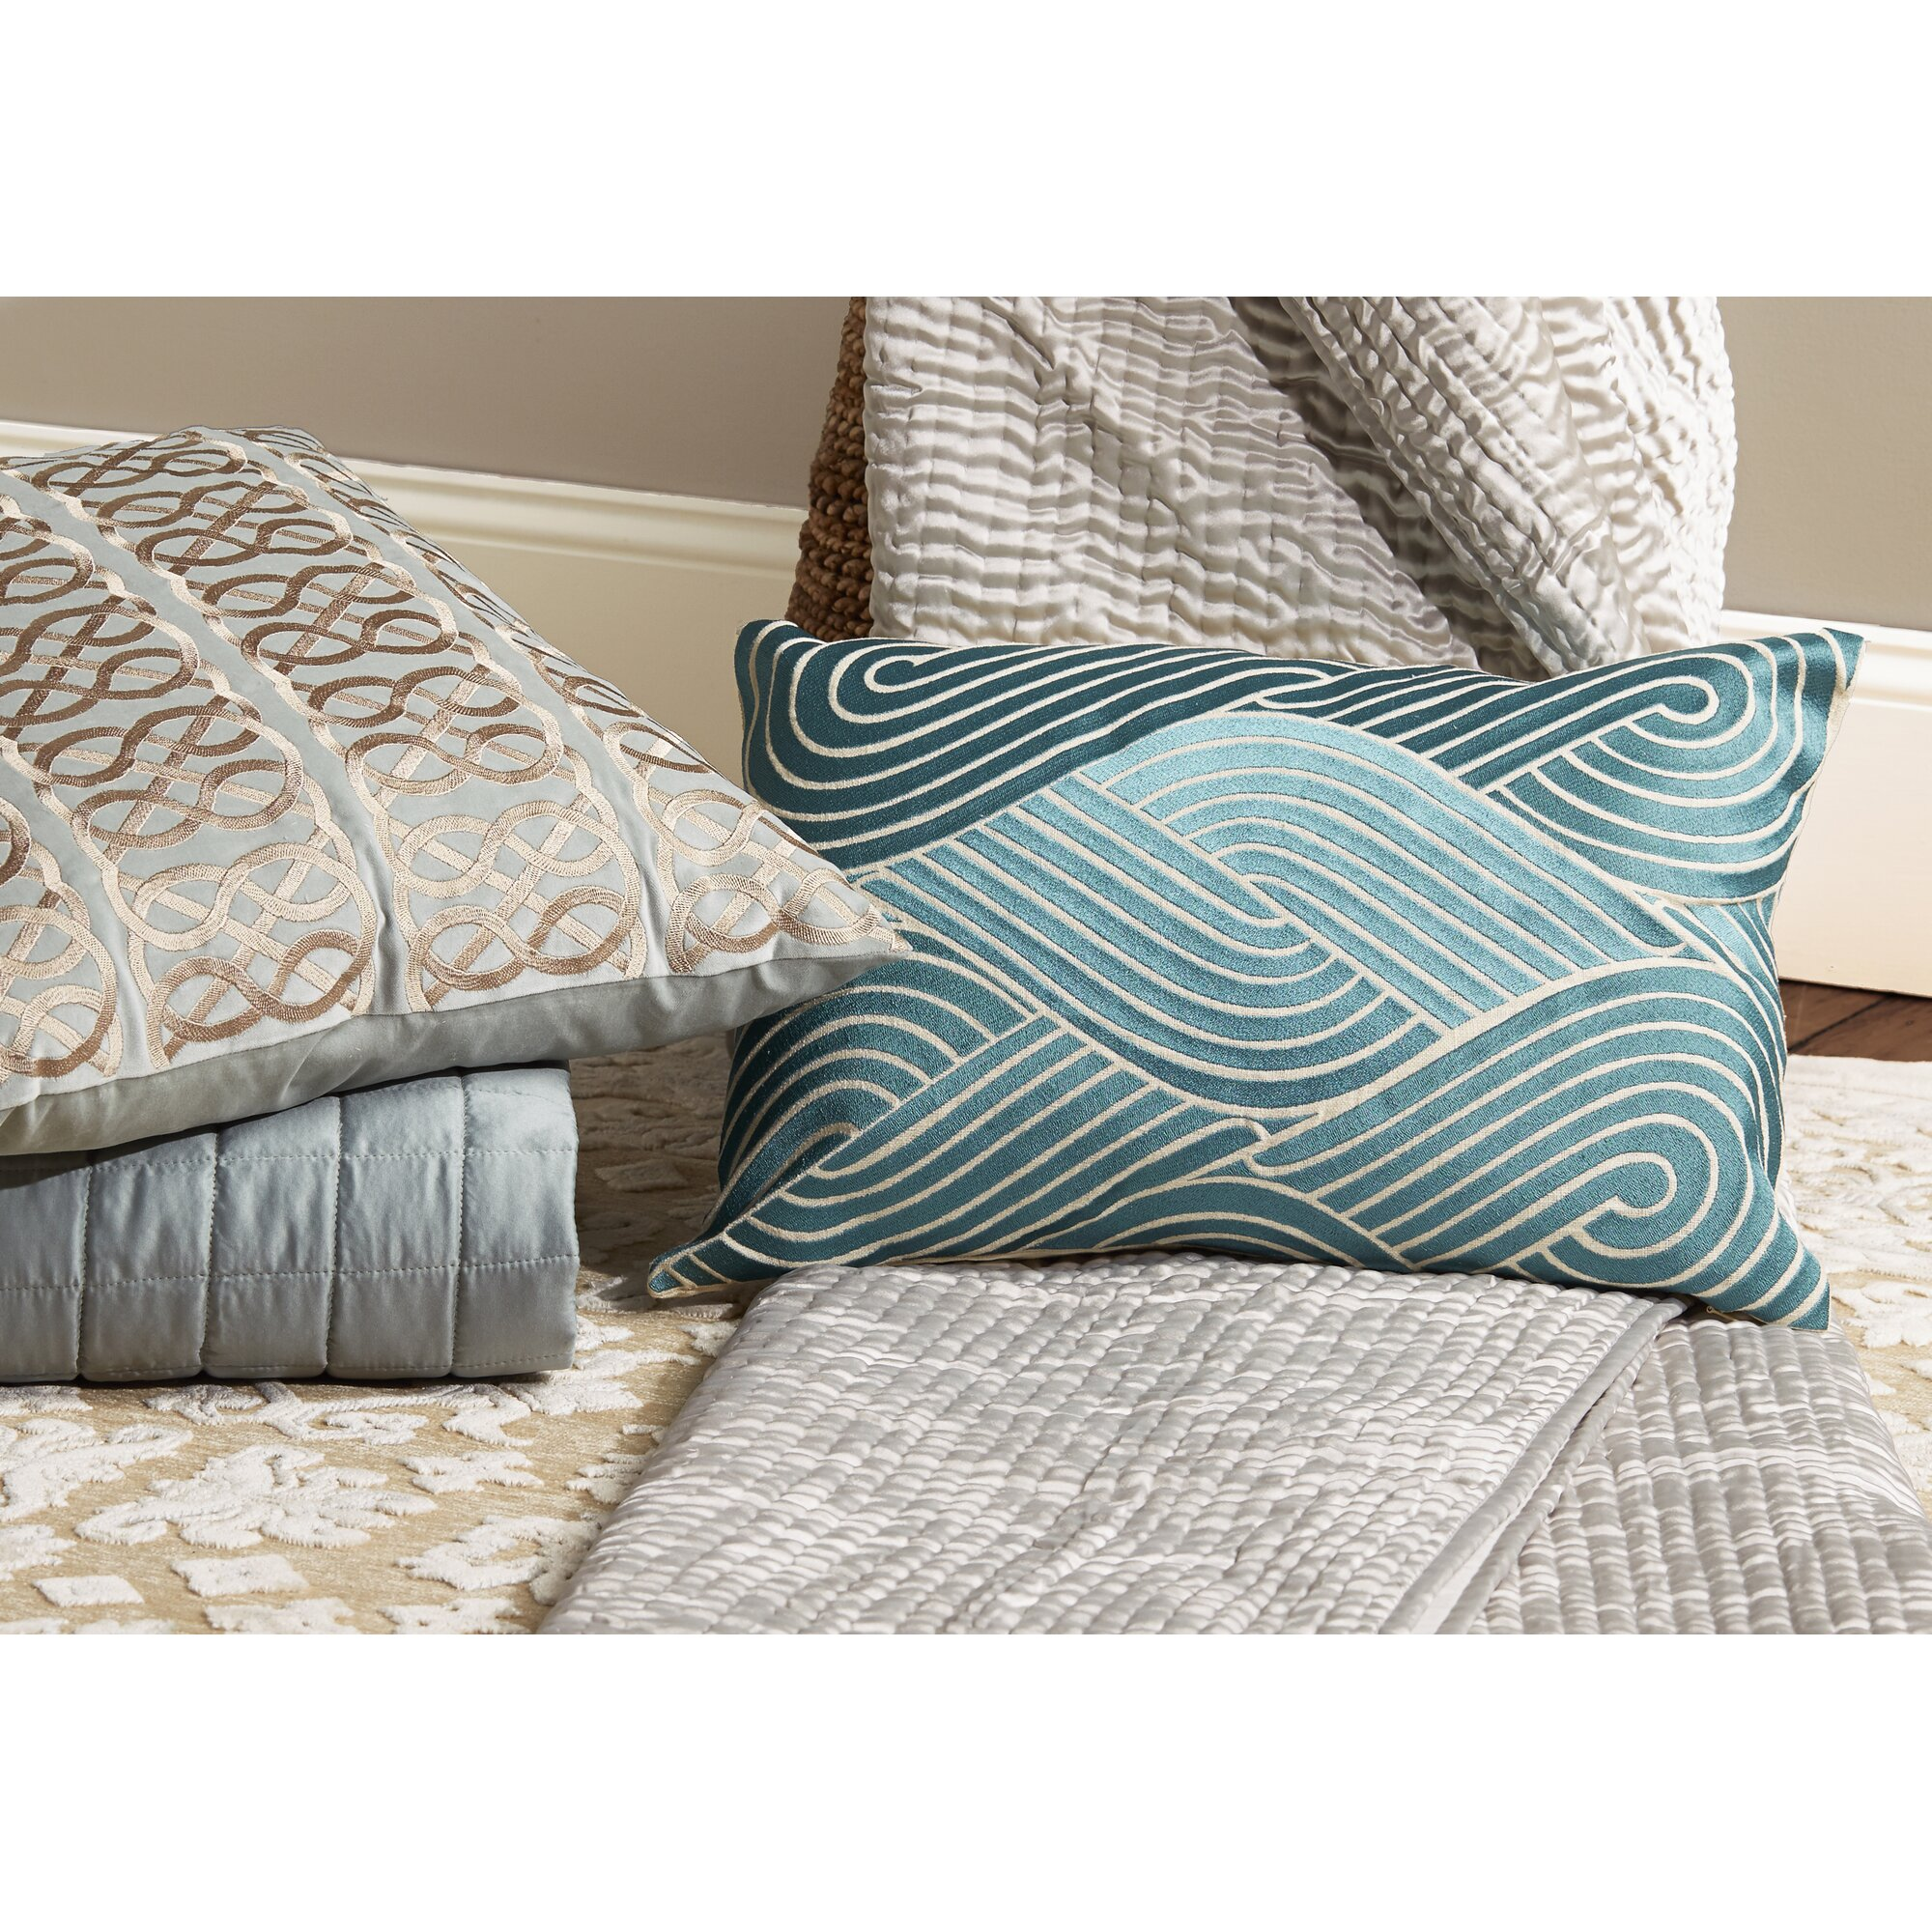 osaka waves embroidered decorative linen lumbar pillow - Decorative Lumbar Pillows